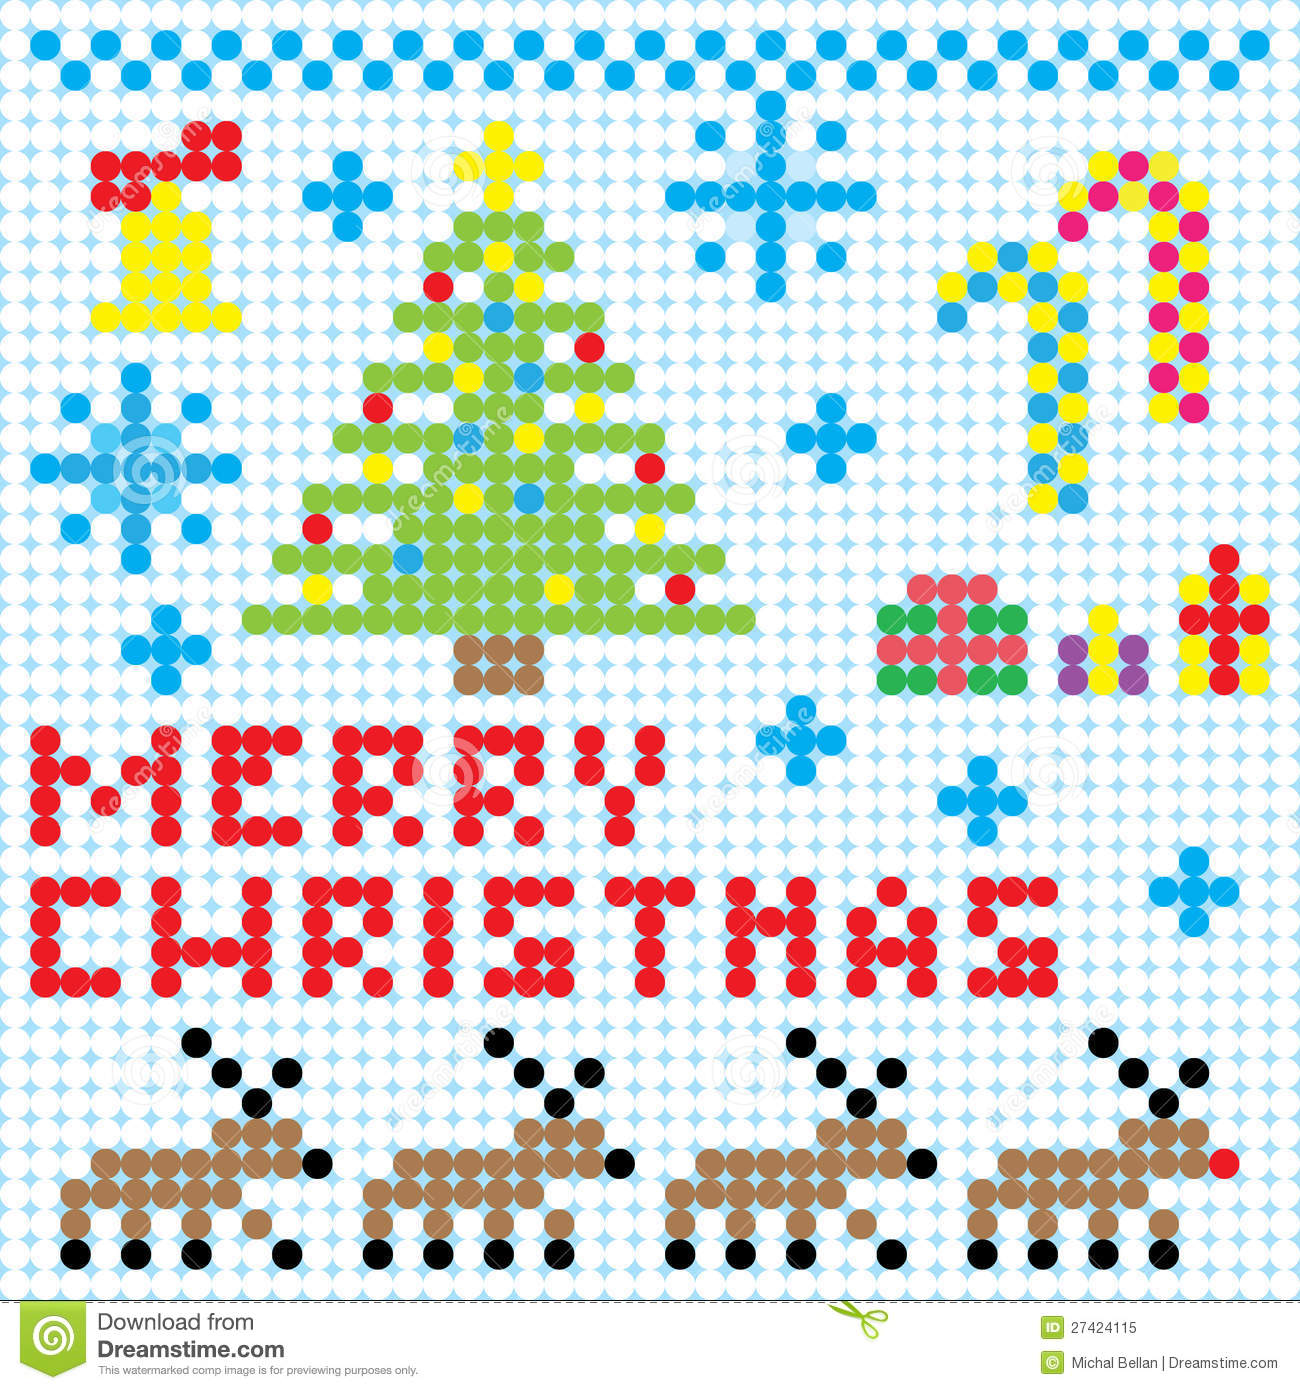 Vector Christmas Pixel Art Illustration 27424115 Megapixl